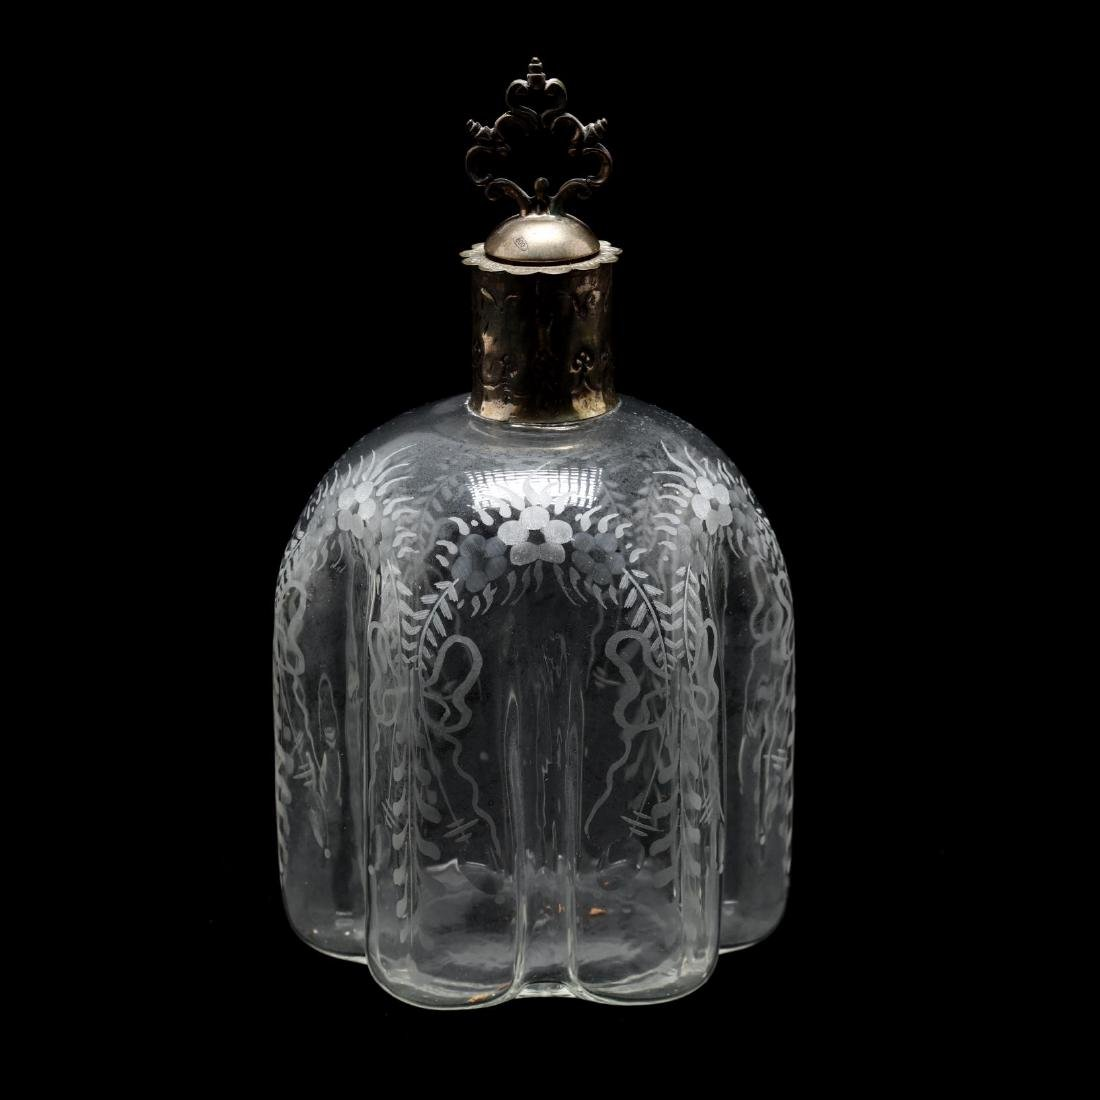 Vintage German Silver and Cut Glass Decanter